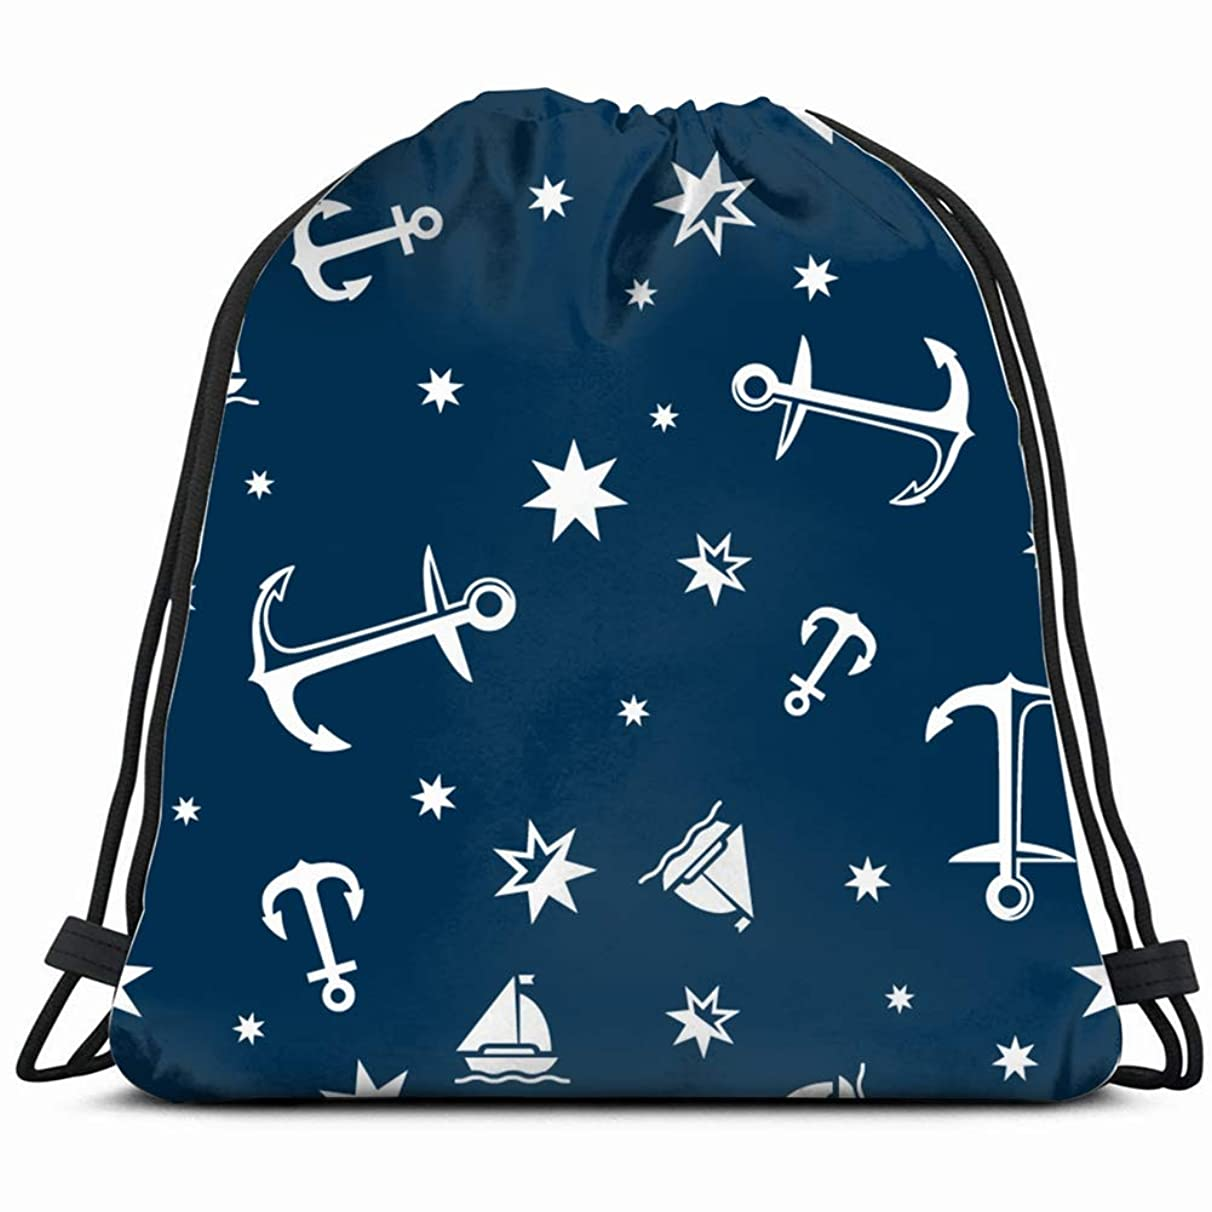 nautical marine sea objects Drawstring Backpack Gym Sack Lightweight Bag Water Resistant Gym Backpack for Women&Men for Sports,Travelling,Hiking,Camping,Shopping Yoga